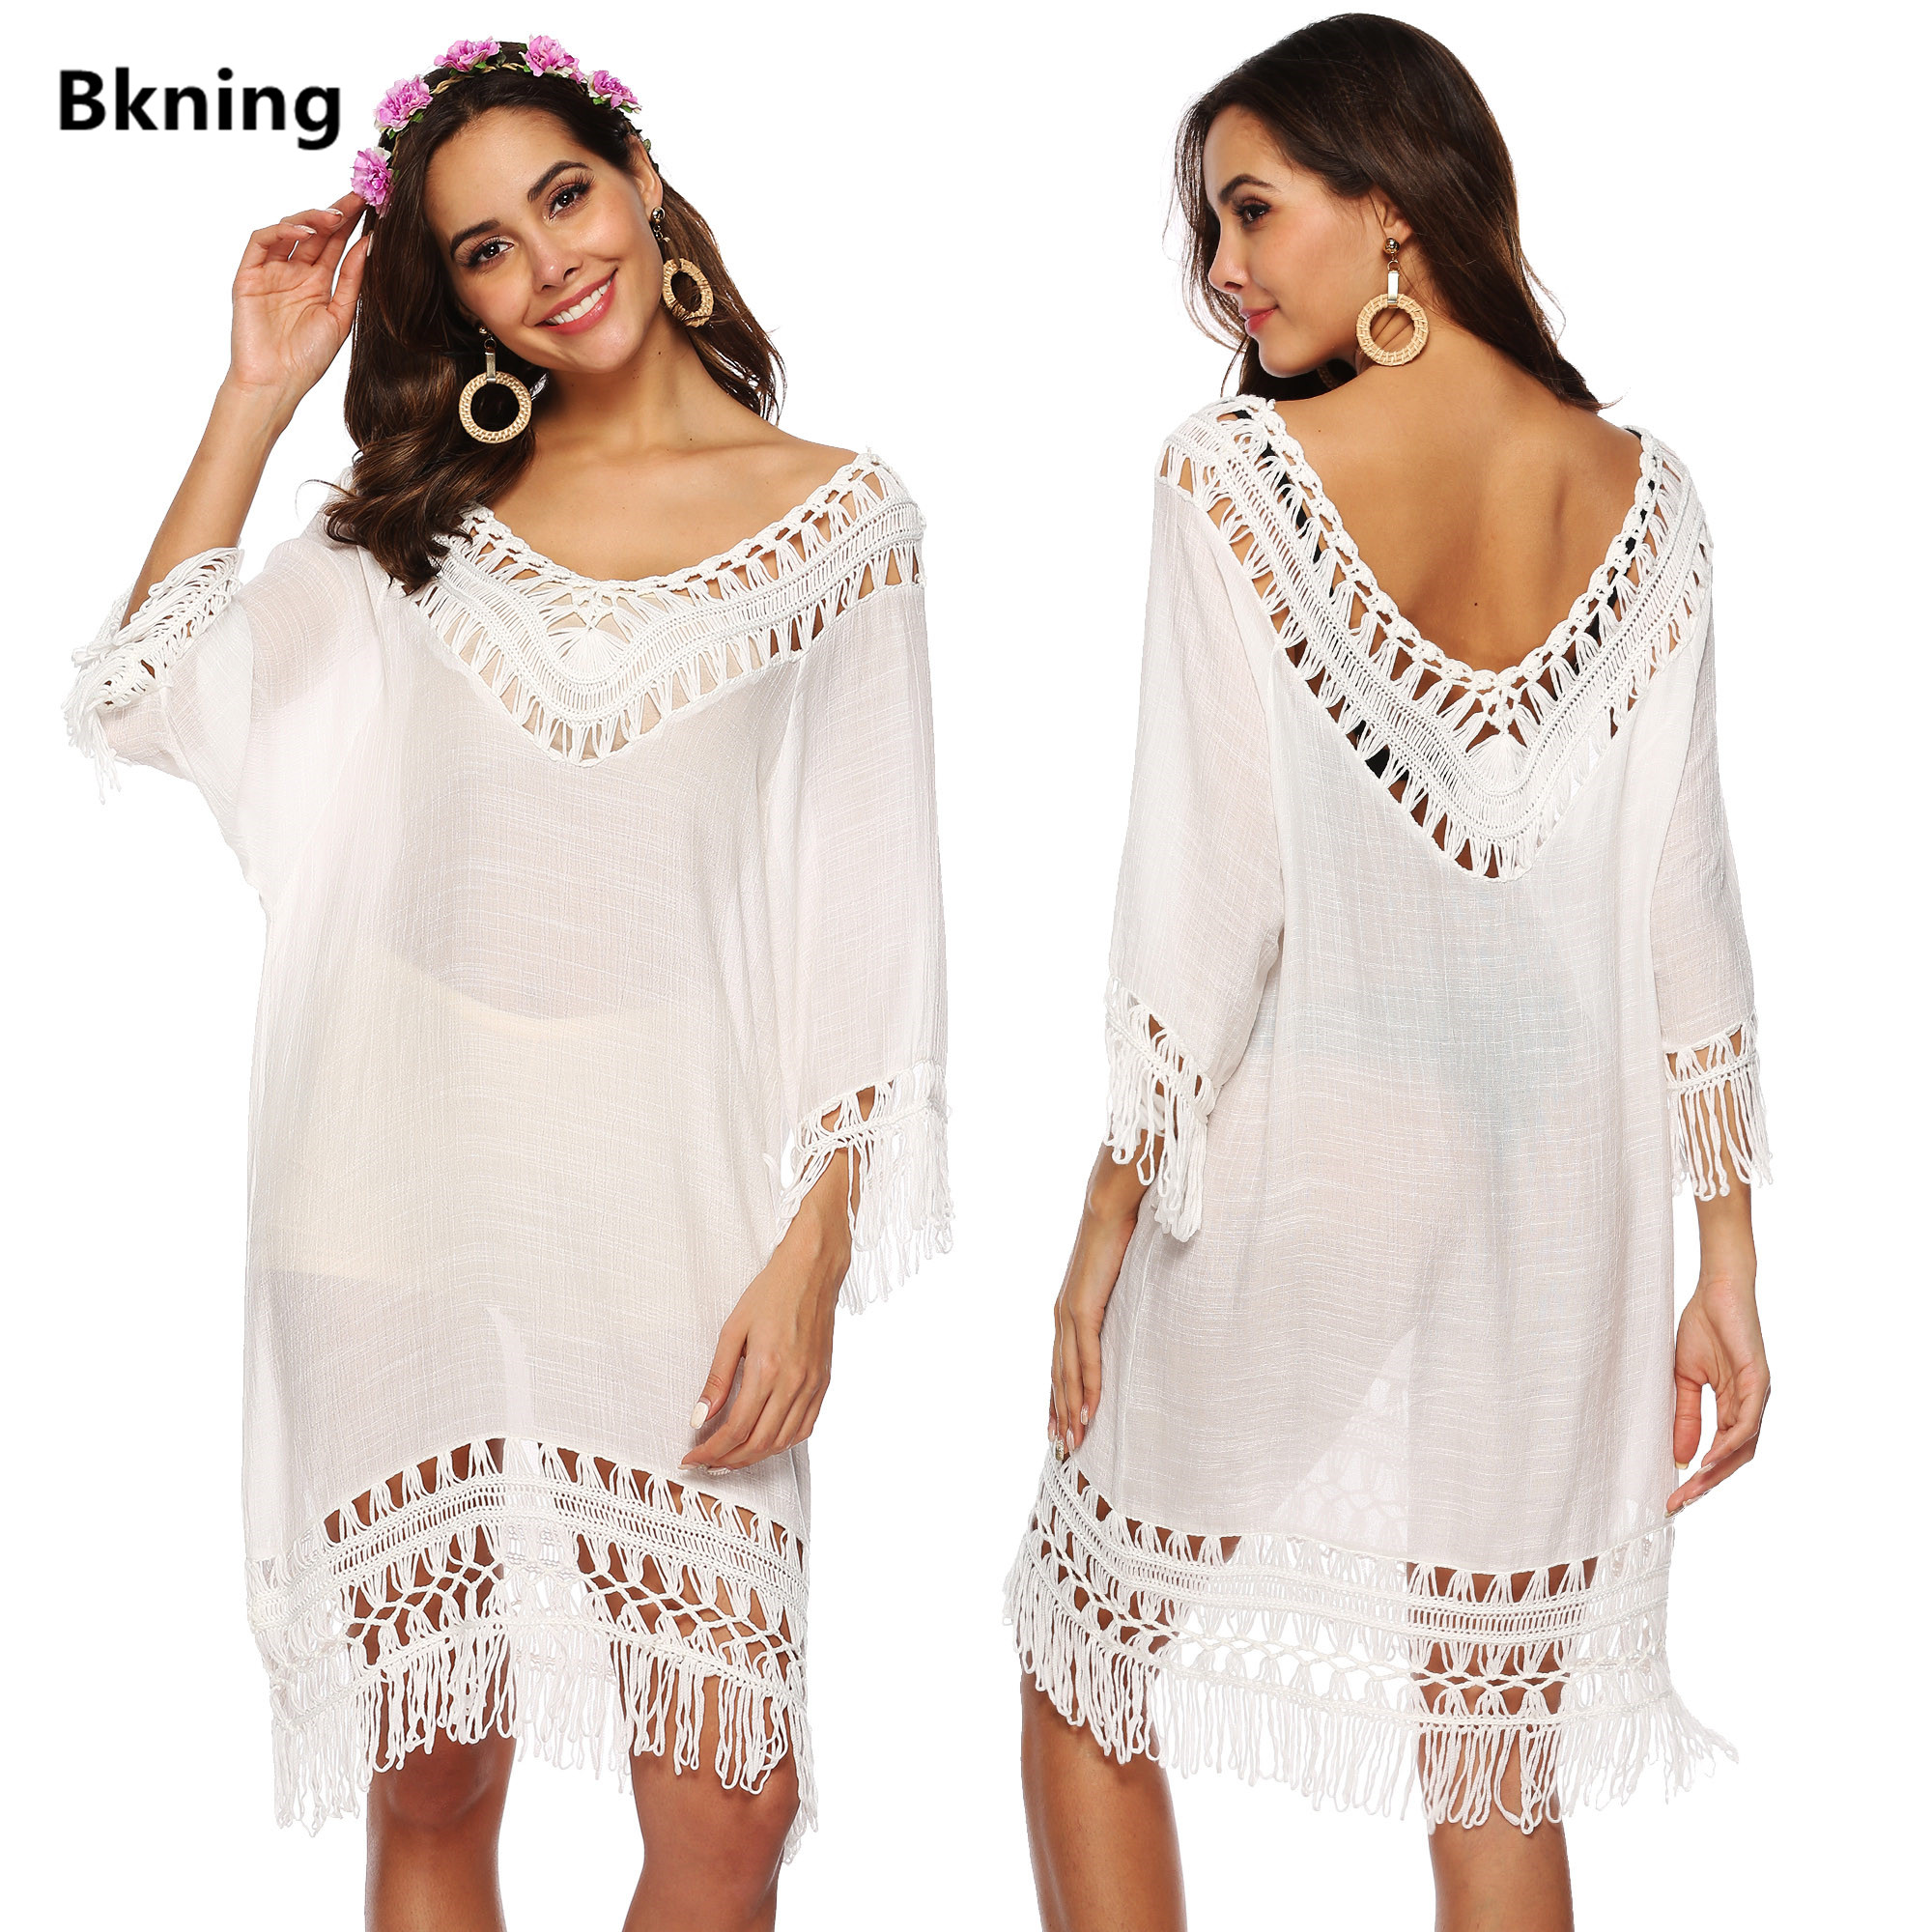 Tassel Beach Dress V Neck White Cover Up Swimsuit Bikini Tunic Ups Women Dresses Bathing Suit 2019 Summer Beachwear Short Sleeve